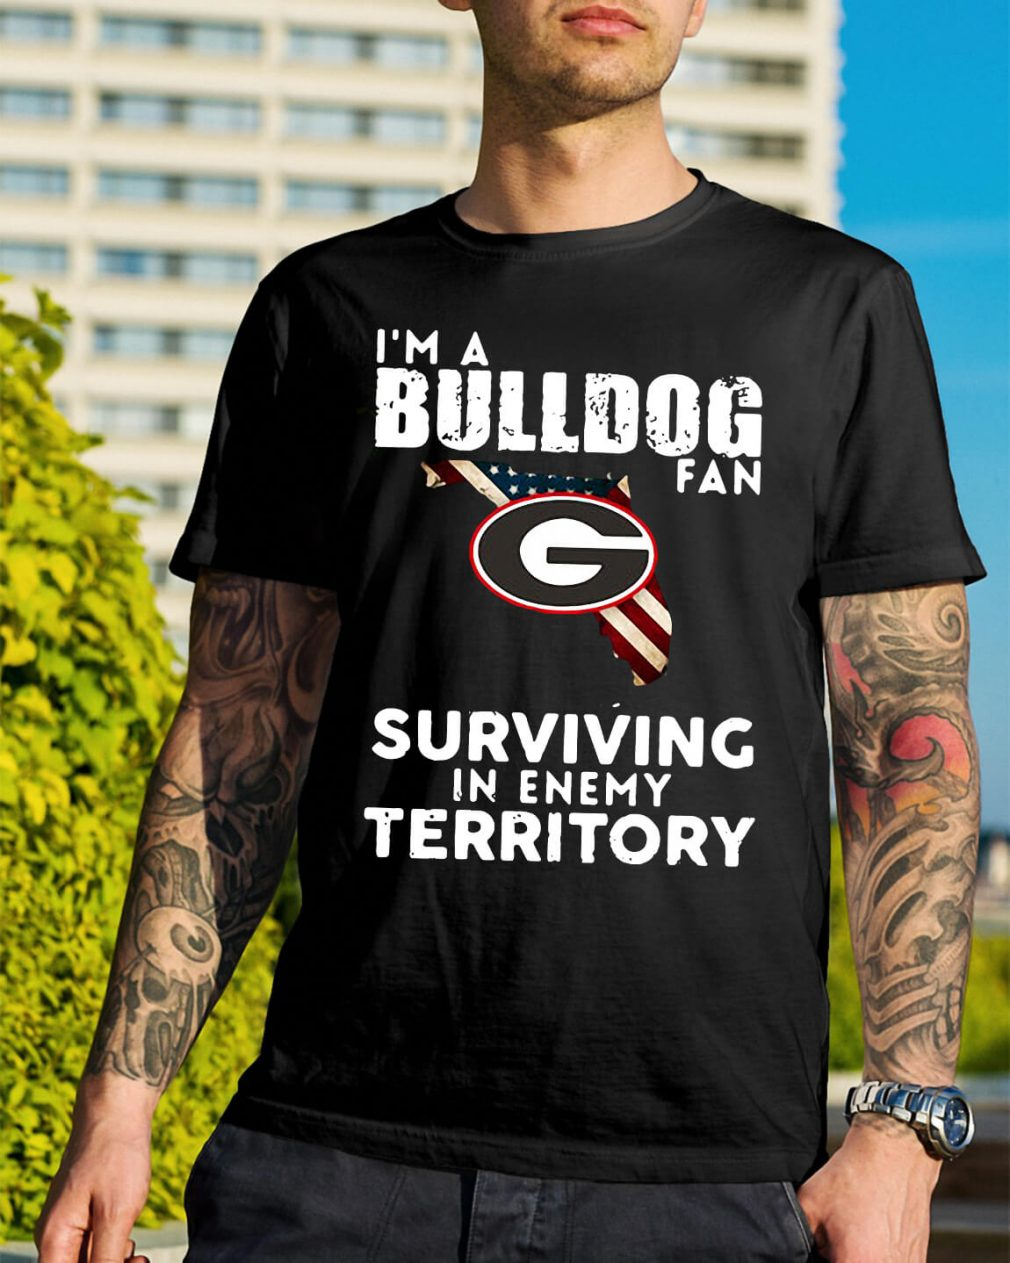 University of Georgia I'm a Bulldog fan Surviving Territory shirt